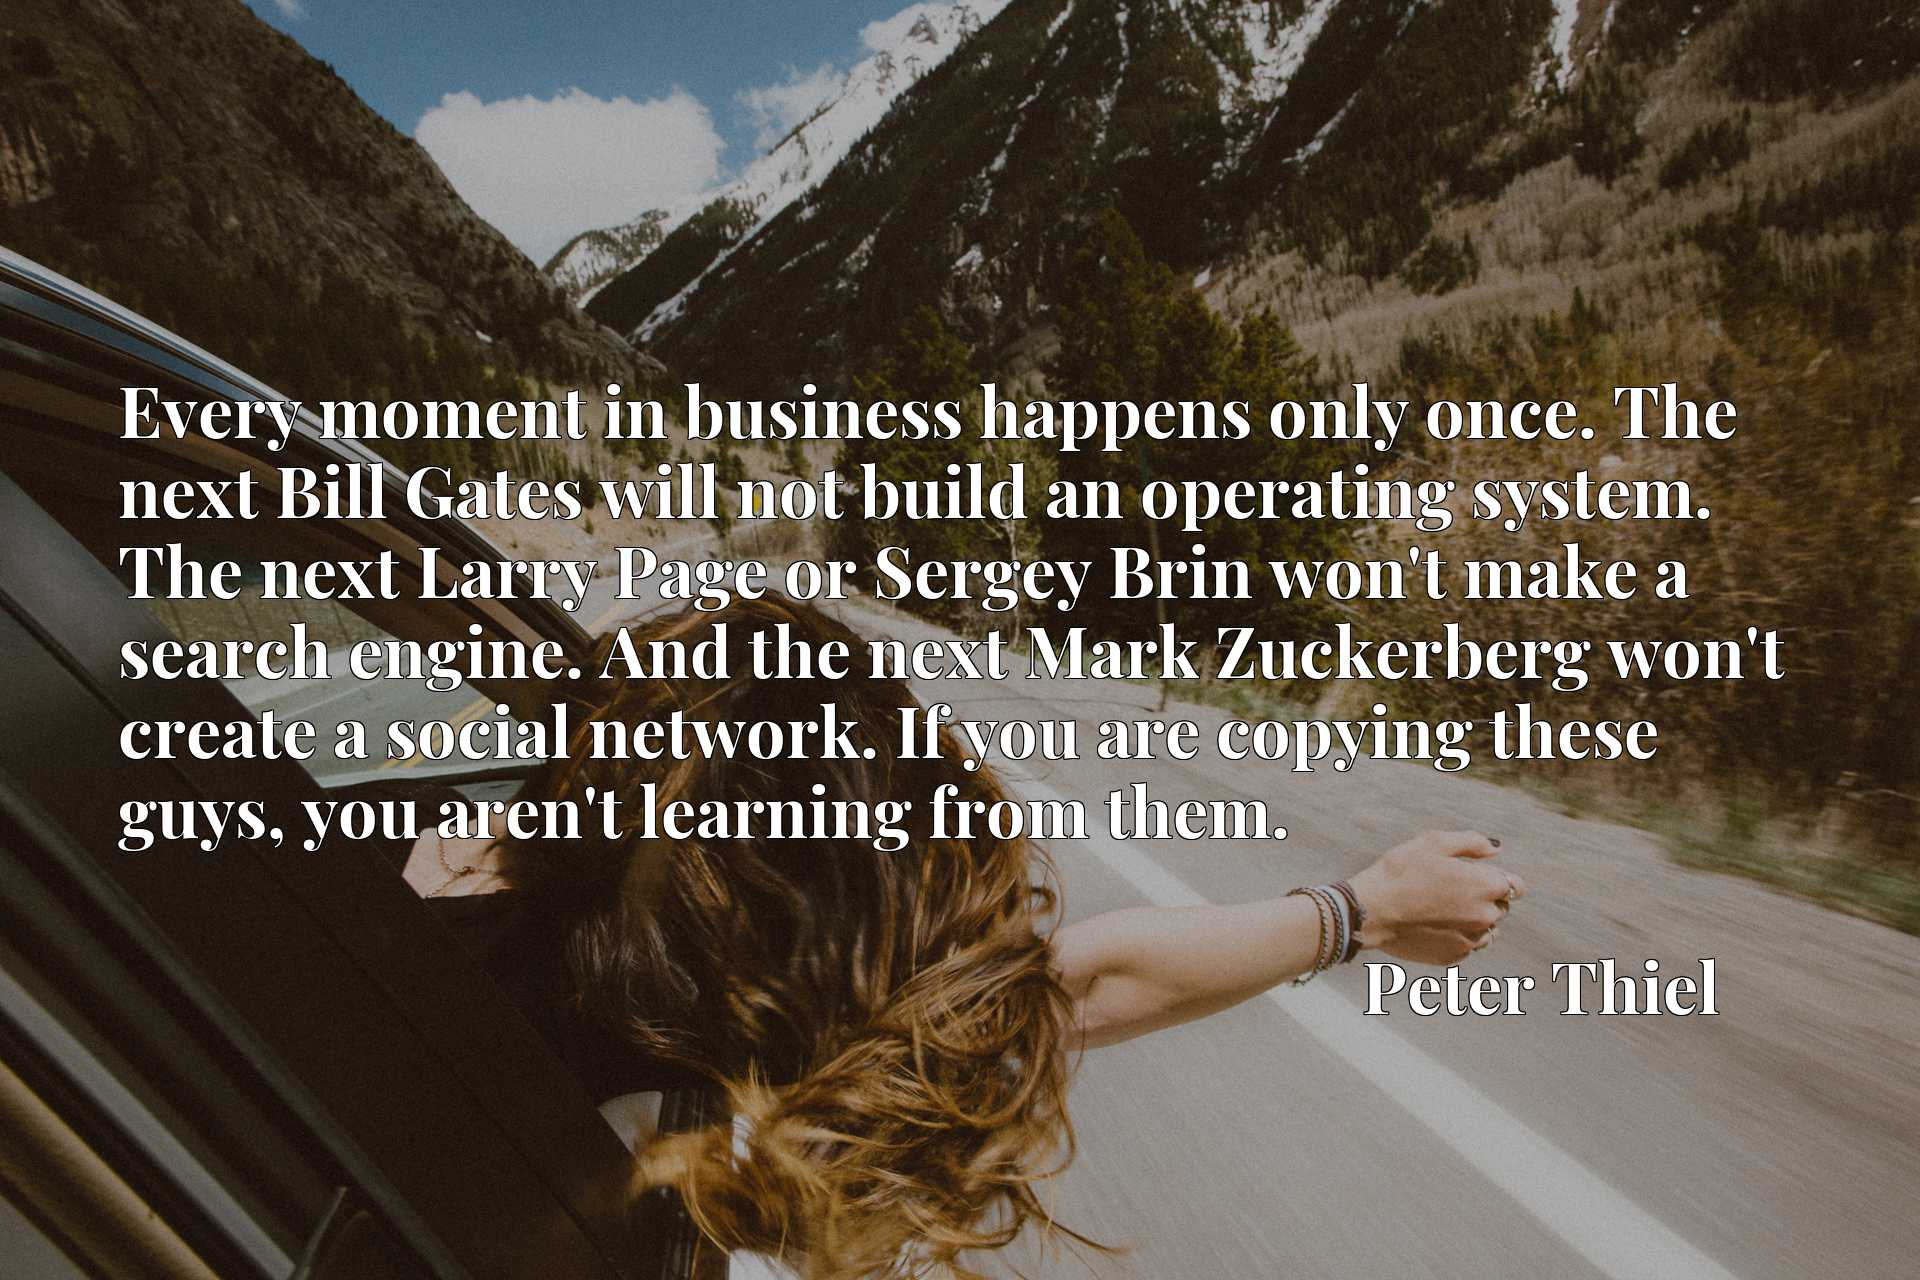 Every moment in business happens only once. The next Bill Gates will not build an operating system. The next Larry Page or Sergey Brin won't make a search engine. And the next Mark Zuckerberg won't create a social network. If you are copying these guys, you aren't learning from them.